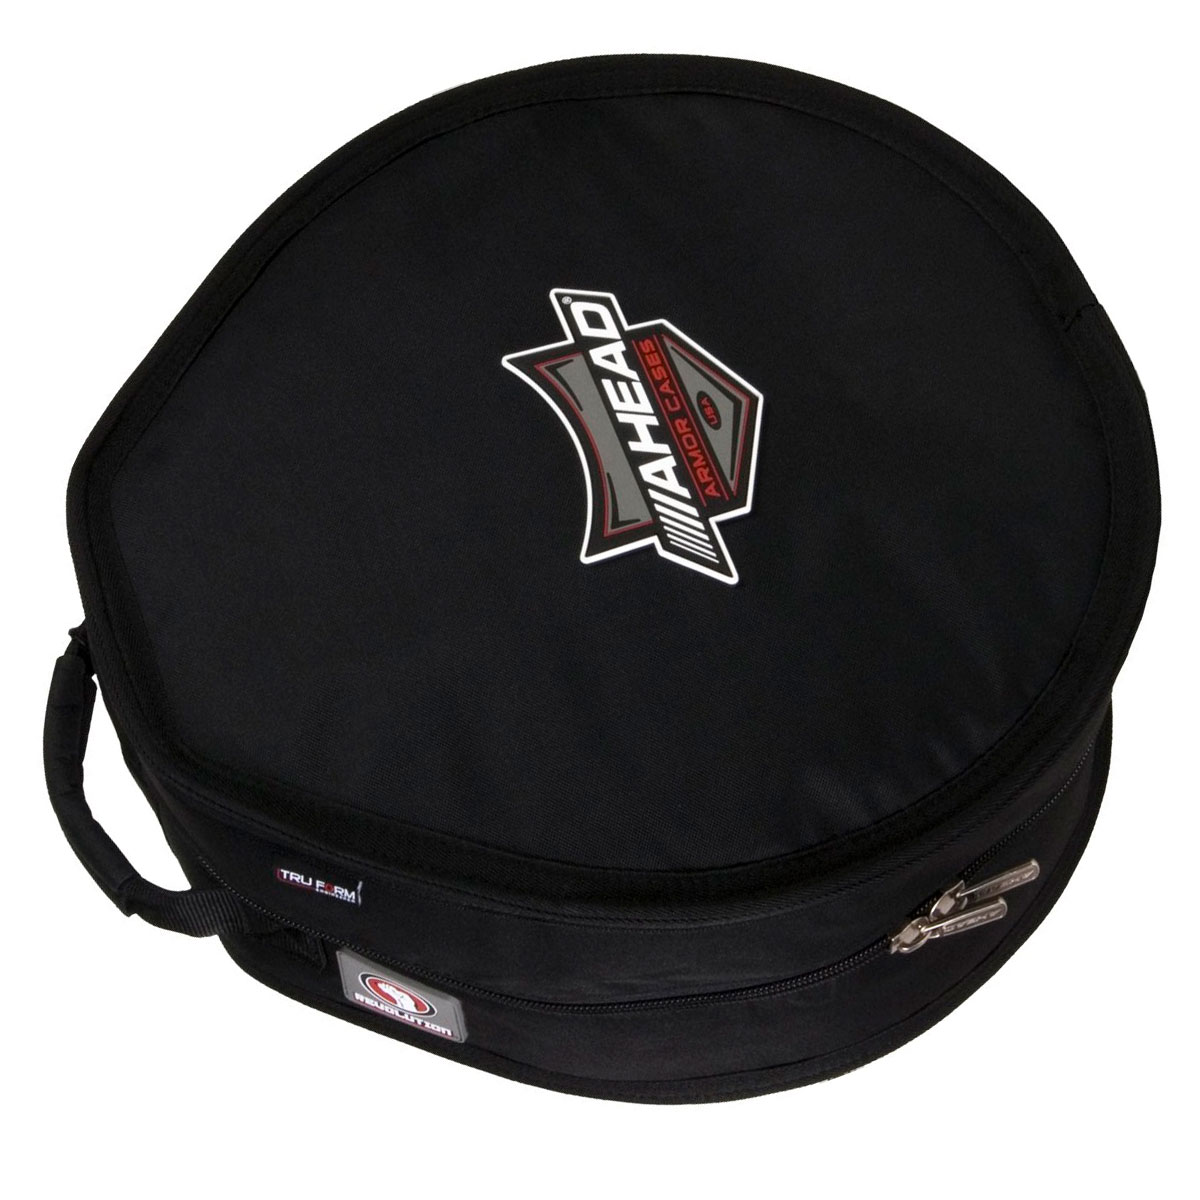 "Ahead Armor 5.5"" (Deep) x 14"" (Diameter) Snare Case"